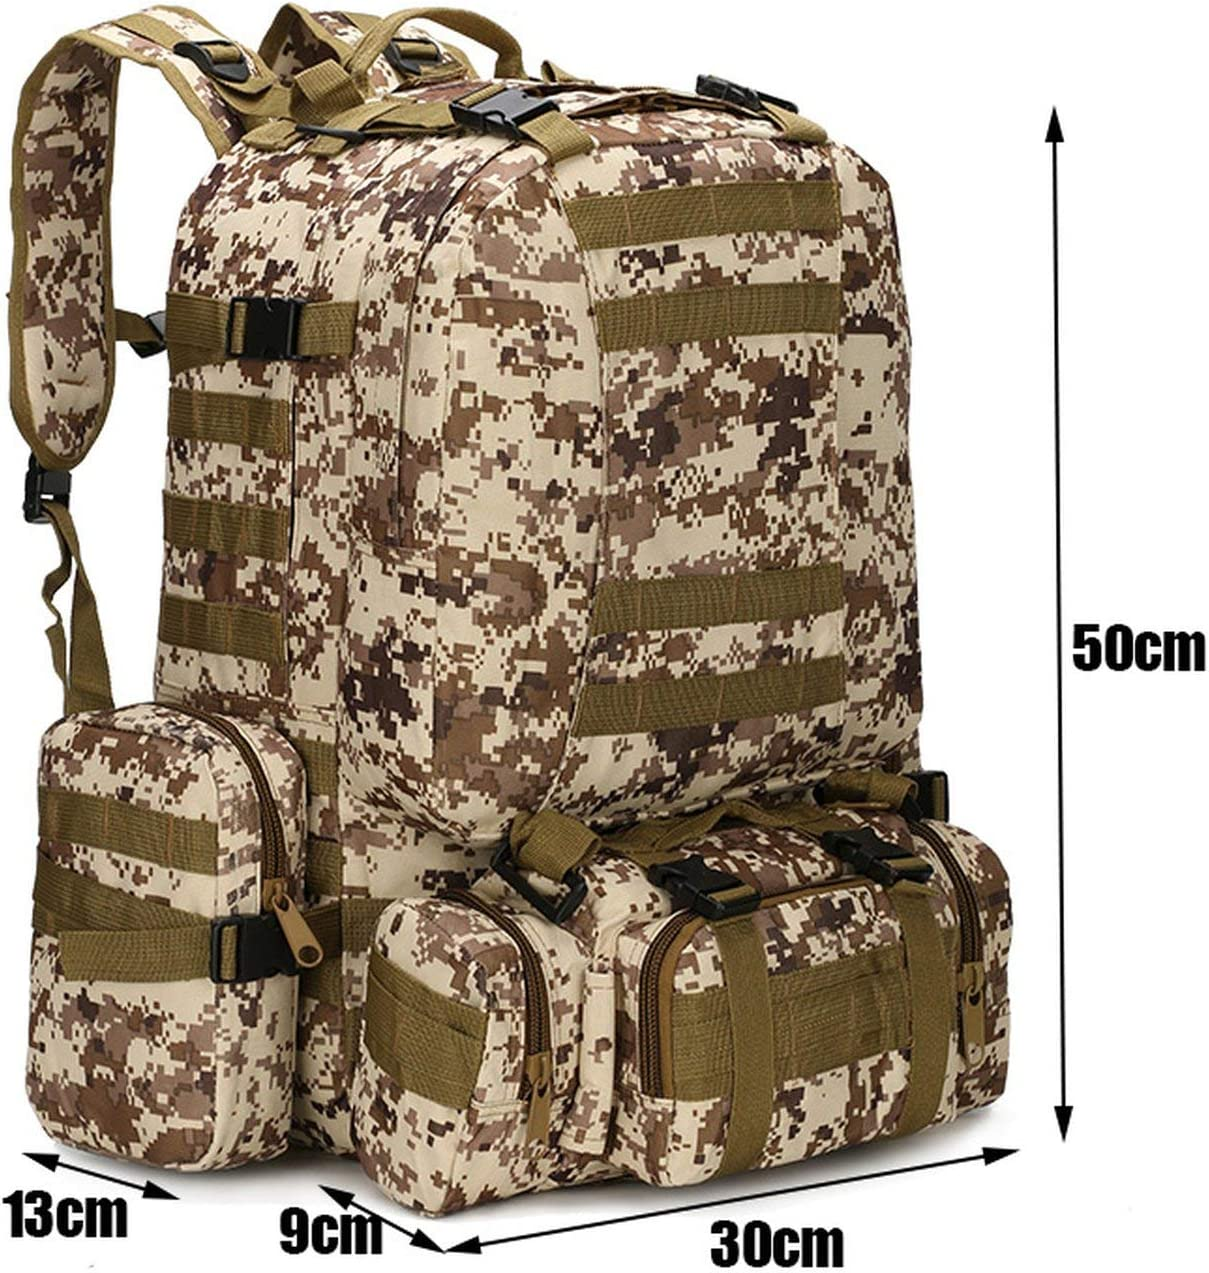 Goodbye 50L Tactical Backpack 4 in 1 Military Bags Army Rucksack Backpack Outdoor Sport Bag Men Camping Hiking Travel Climbing Bag